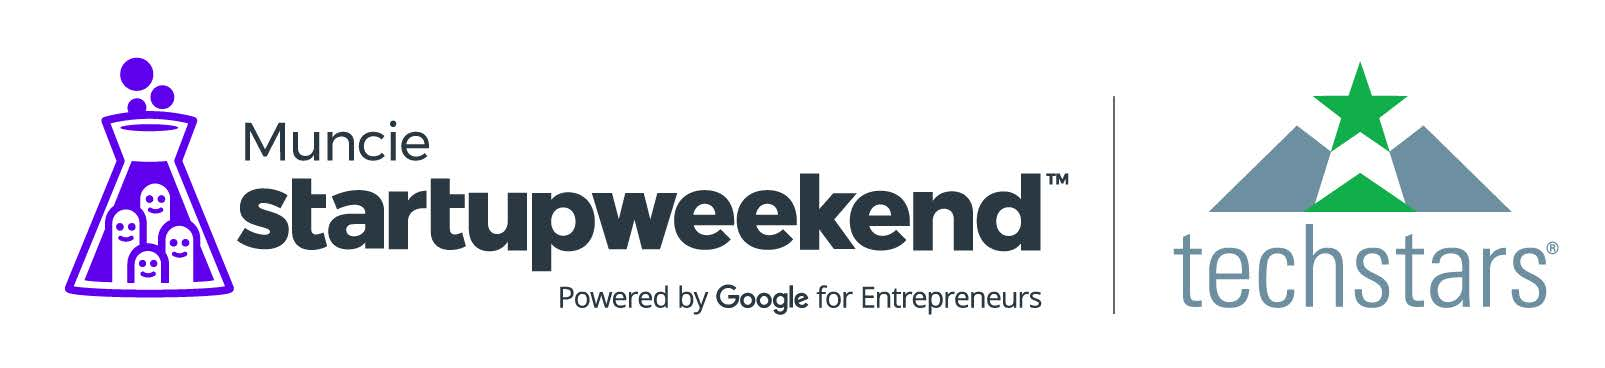 Startup Weekend Muncie - October 11-13